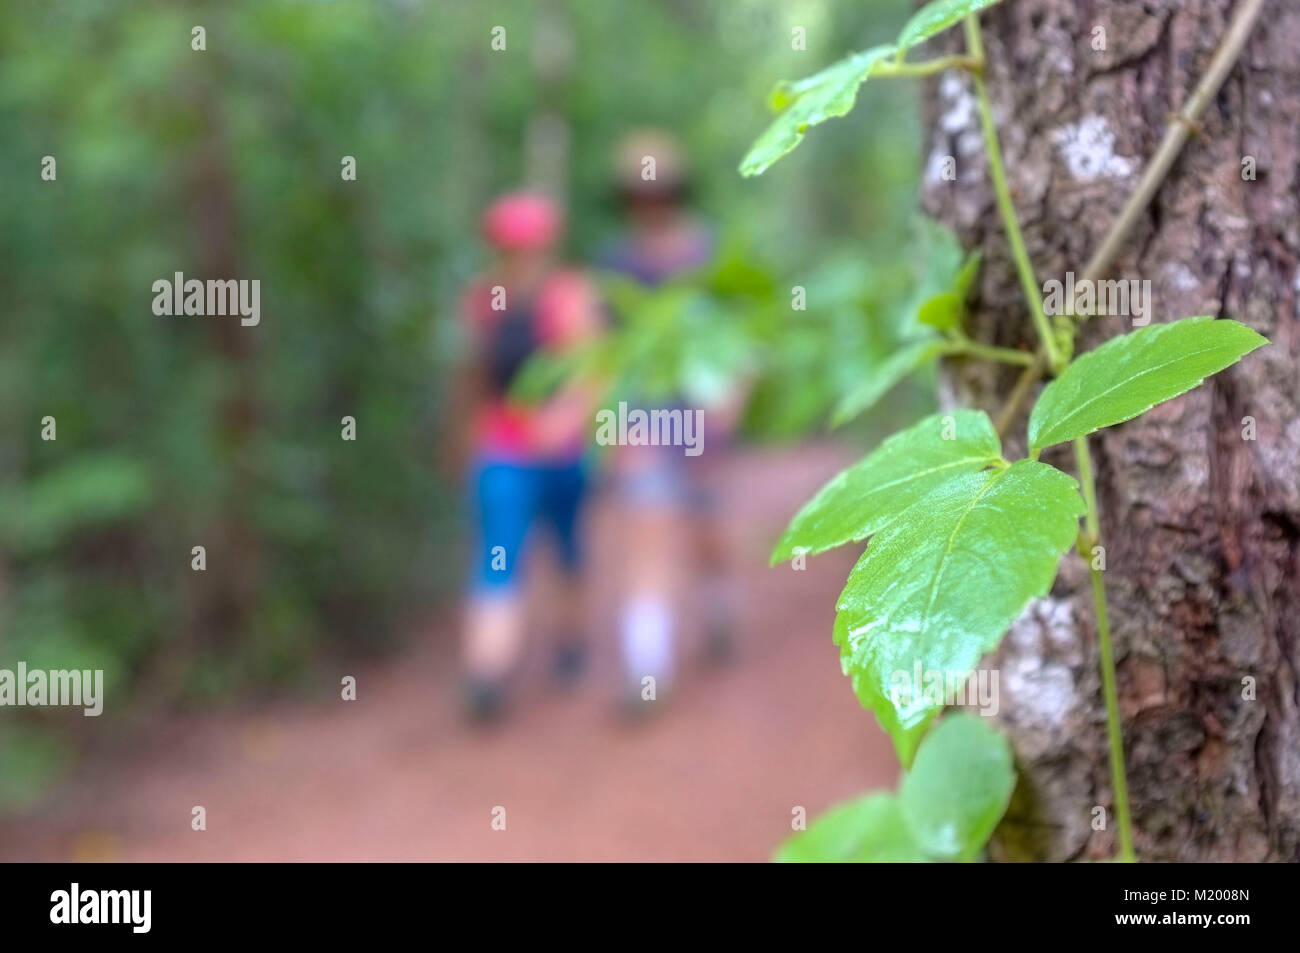 blurred-couple-walking-a-forest-track-at-east-point-reserve-a-suburb-M2008N.jpg